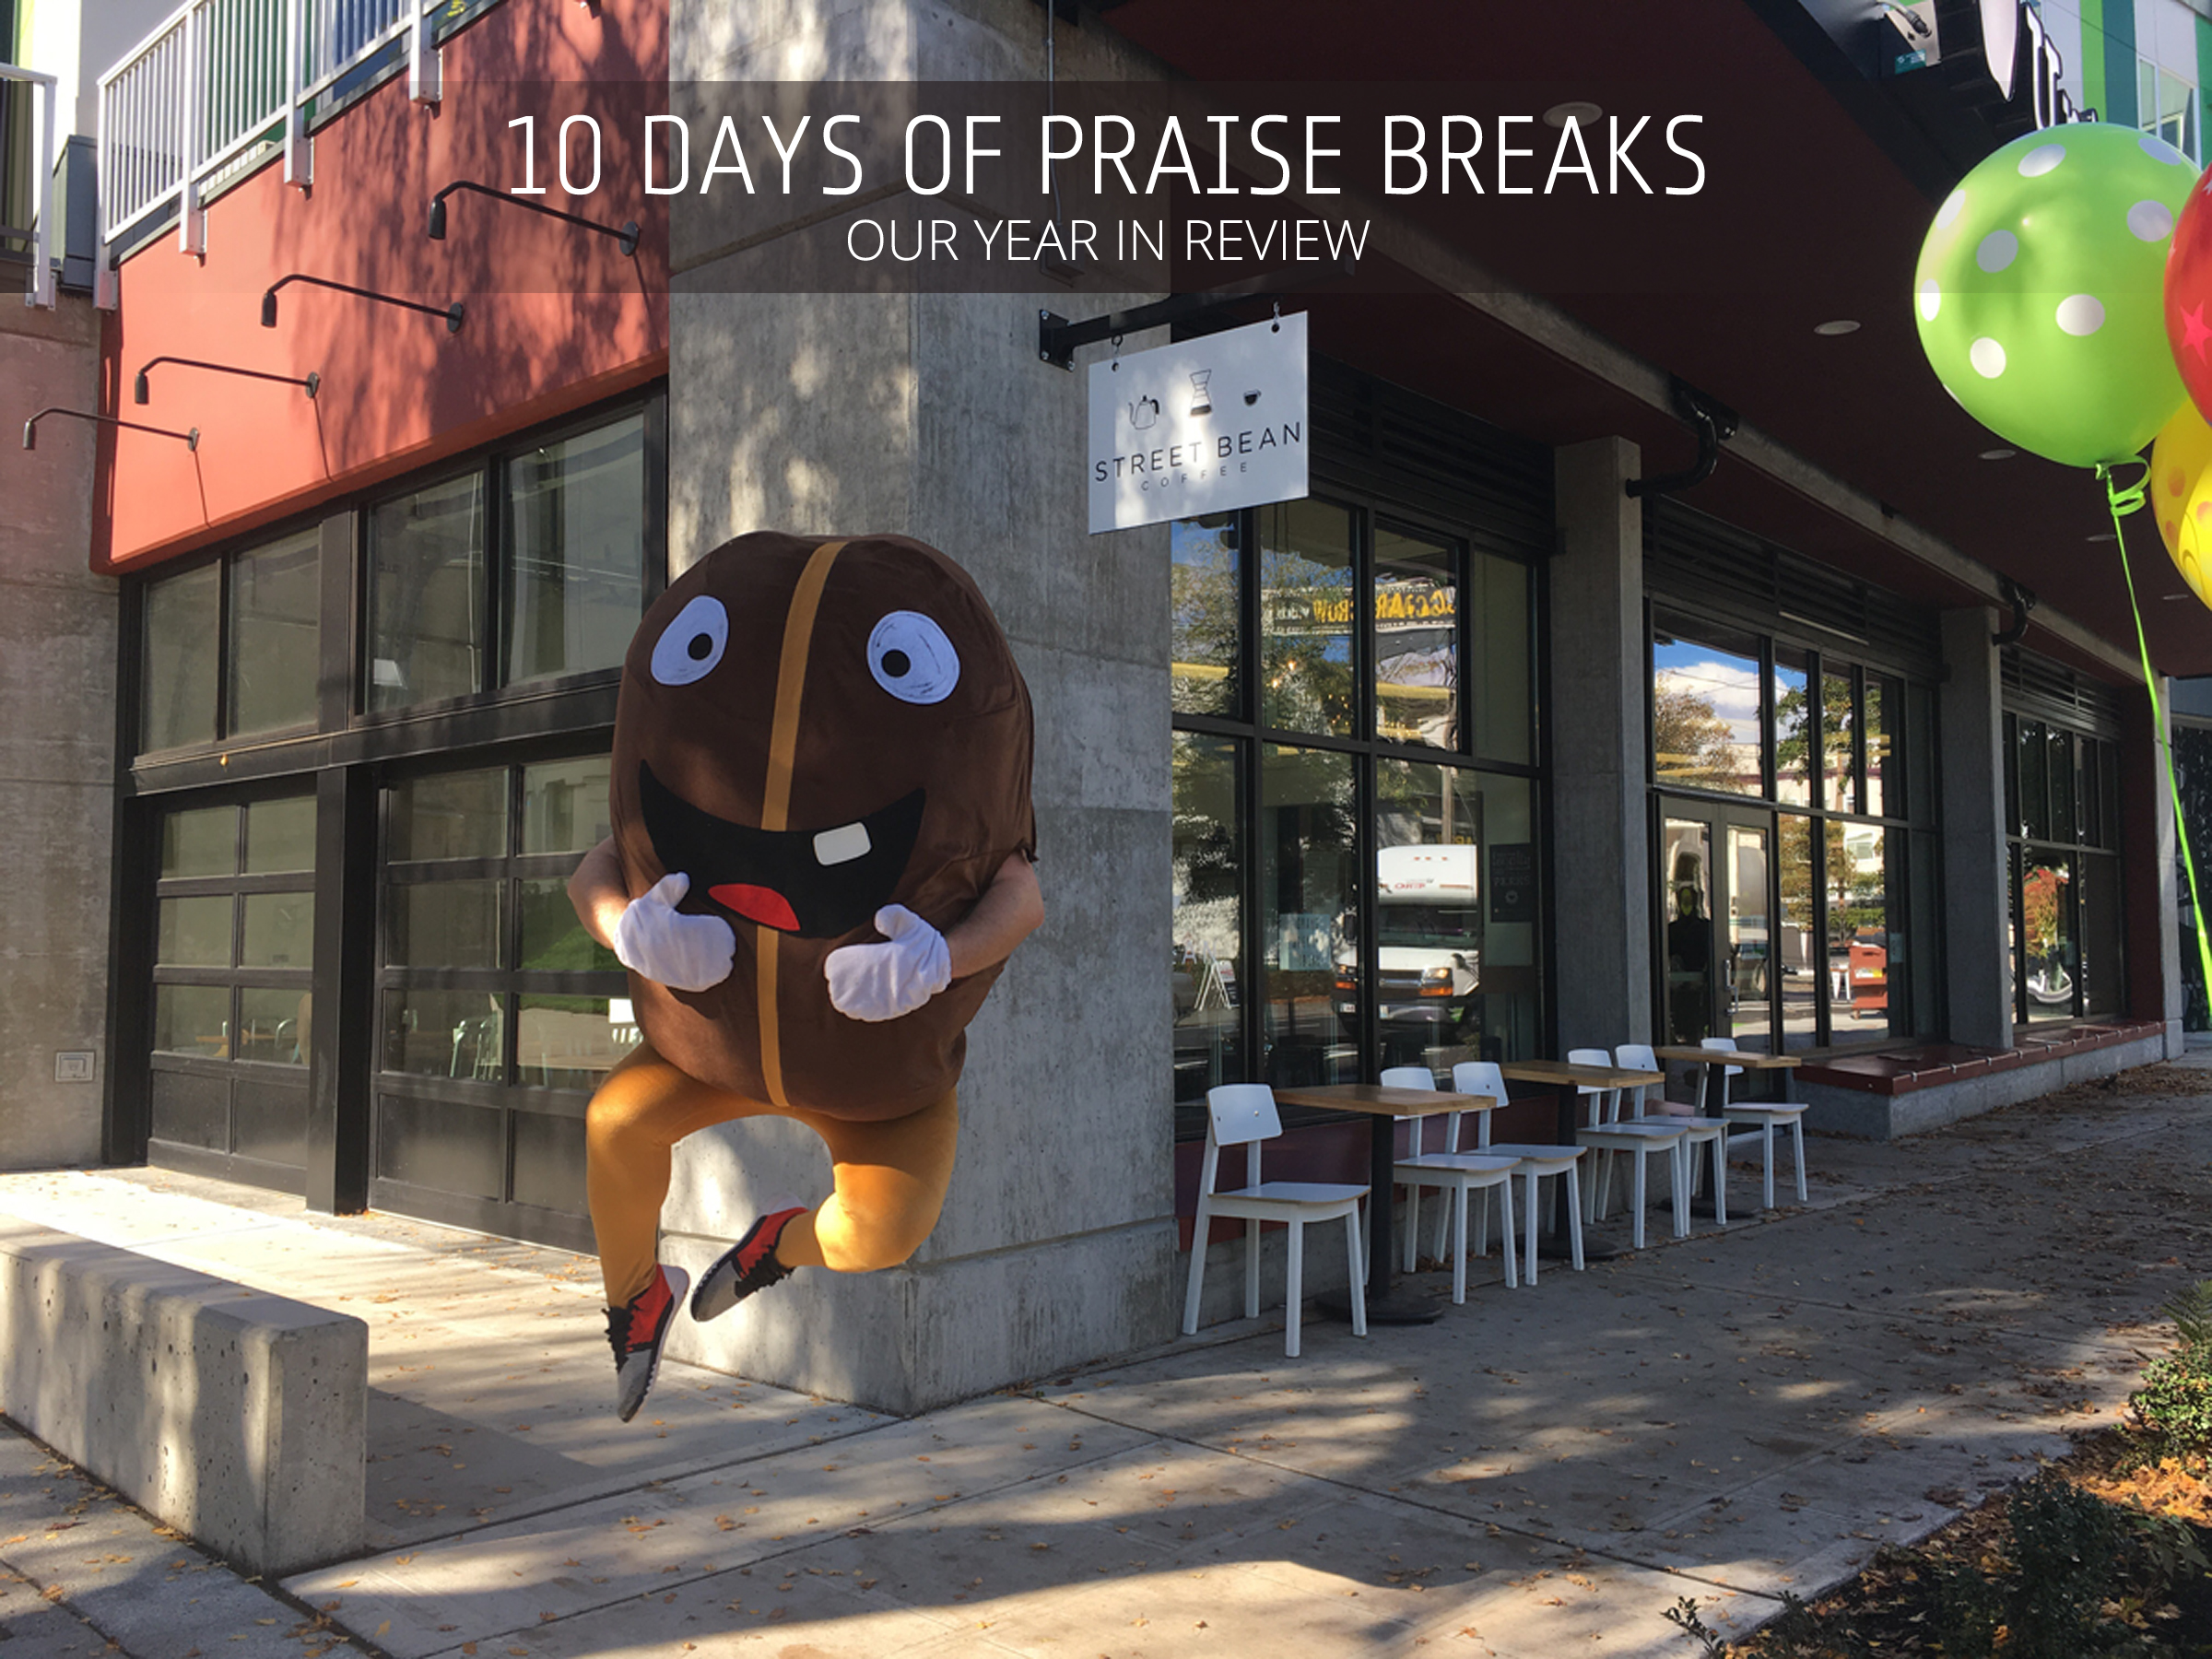 10 Days of Praise Breaks: Our 2016 in Review